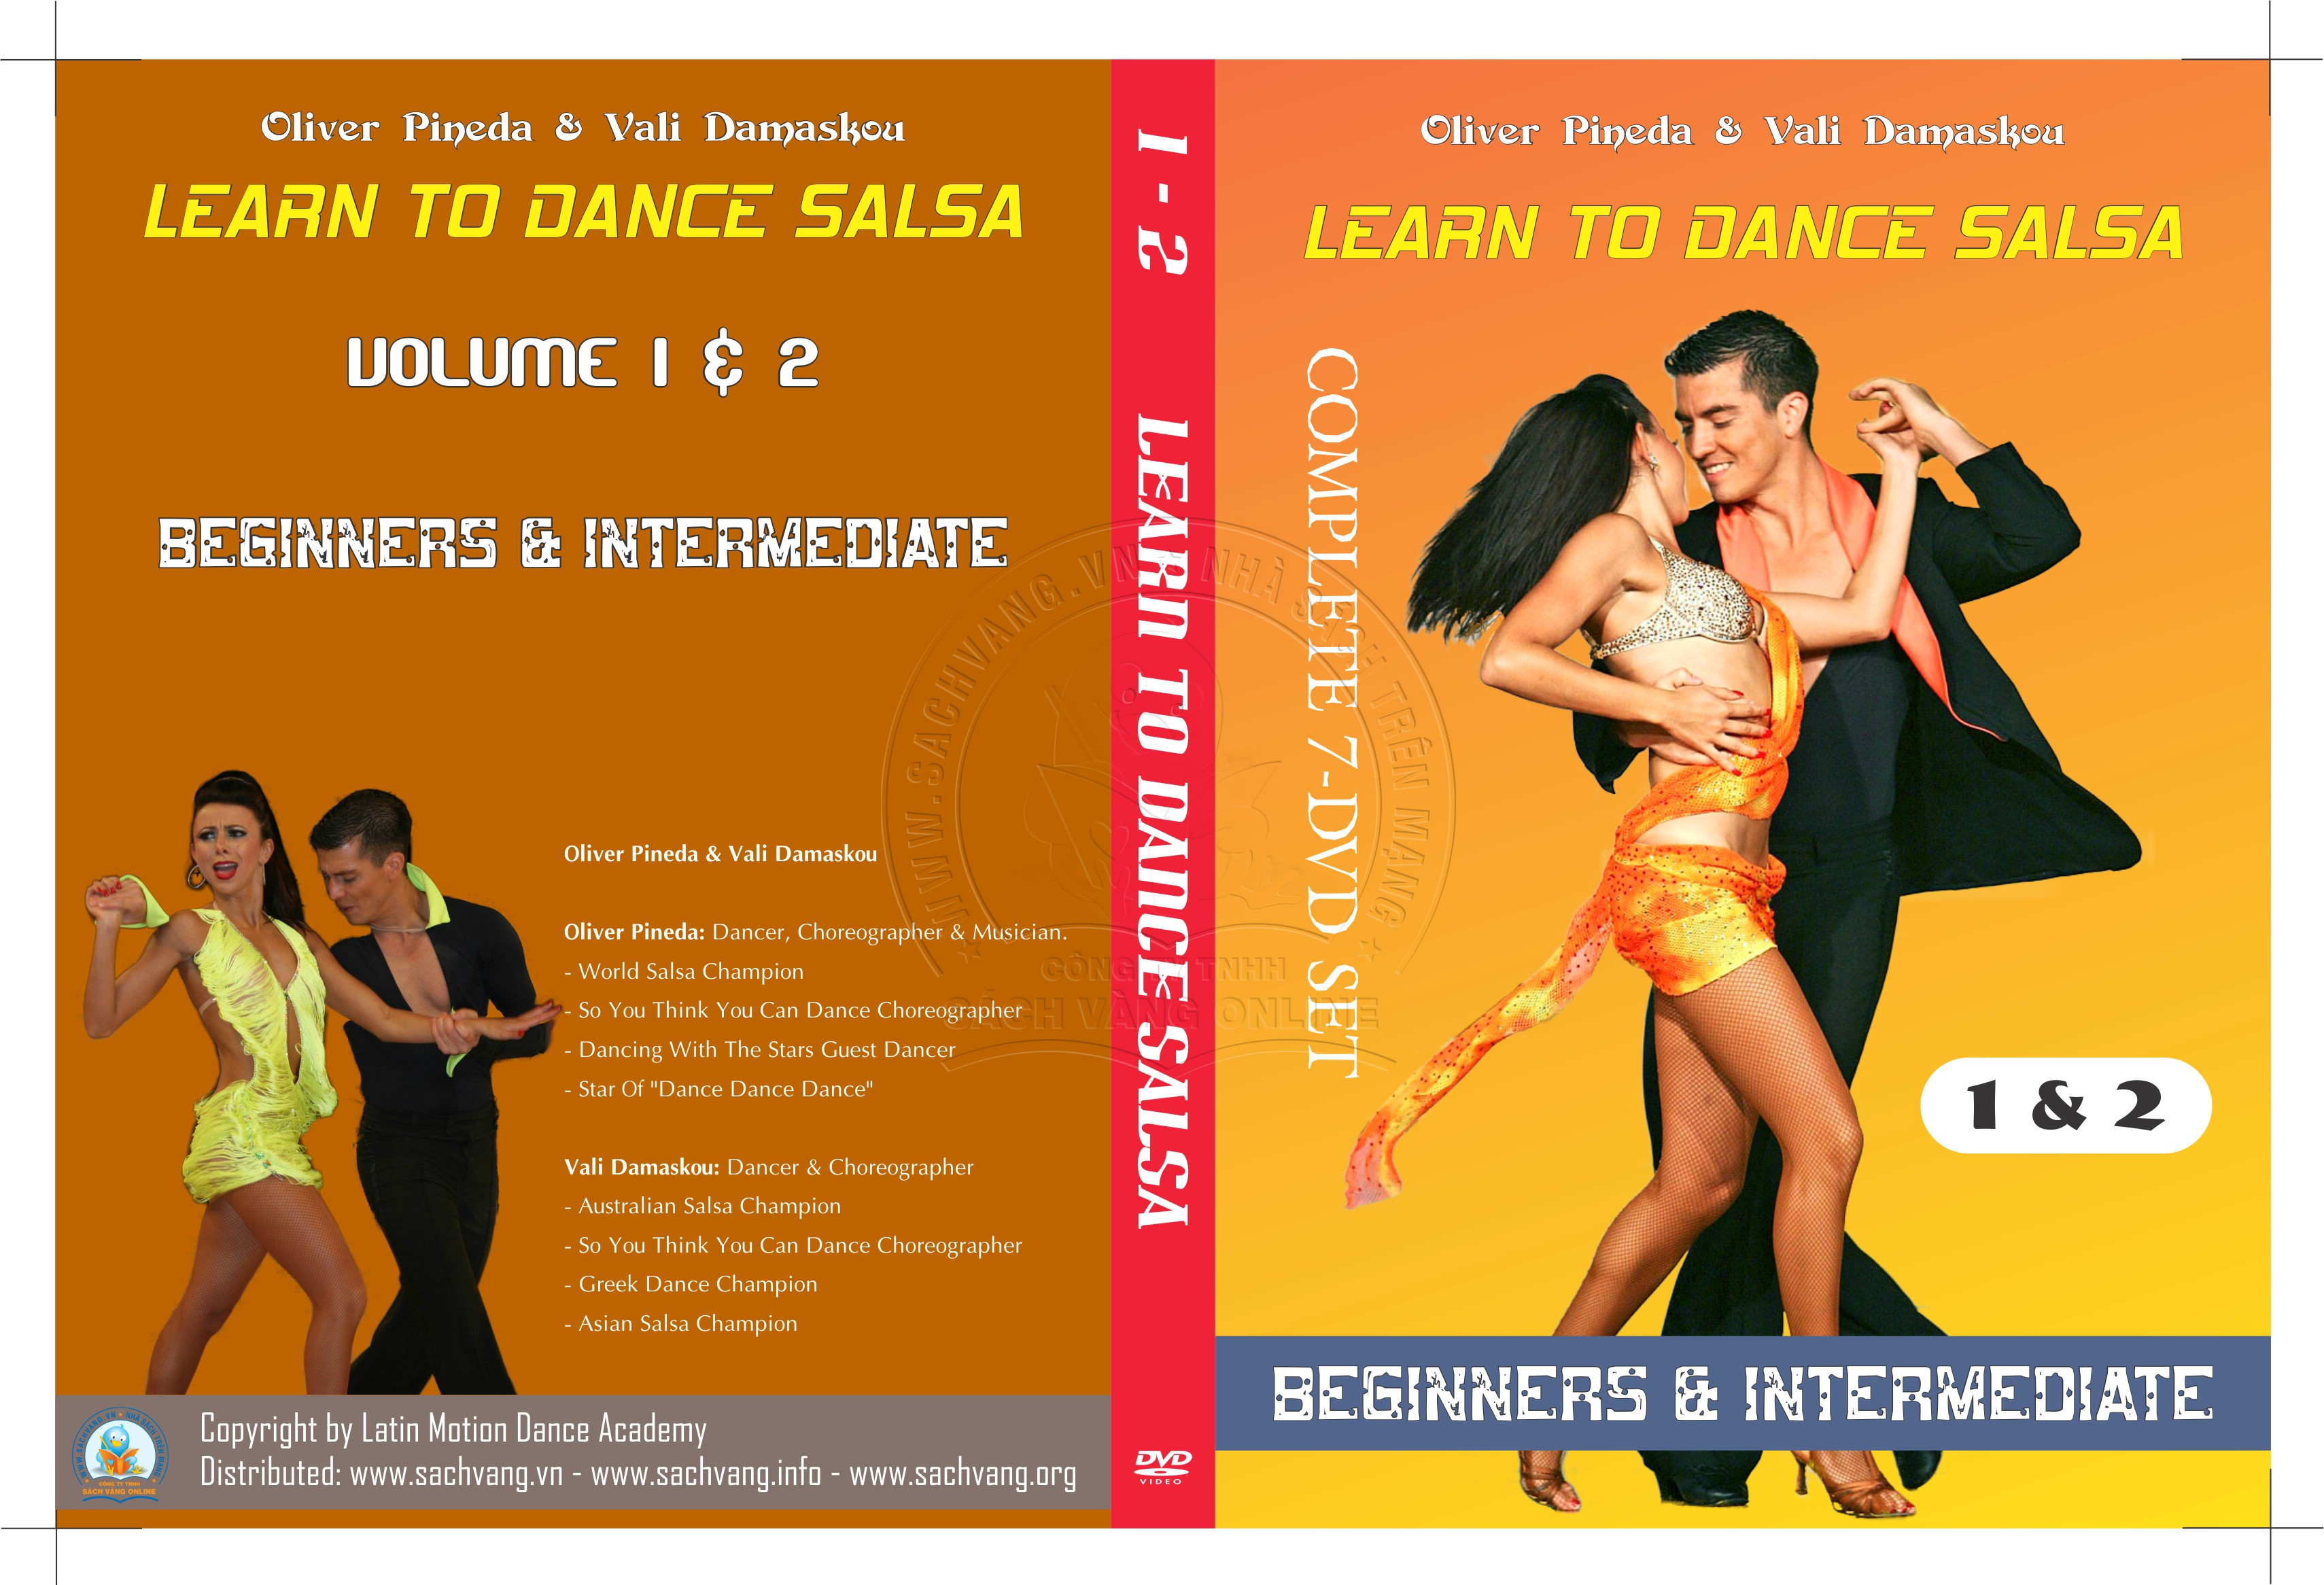 Learn To Dance Salsa with Oliver Pineda & Vali Damaskou 1